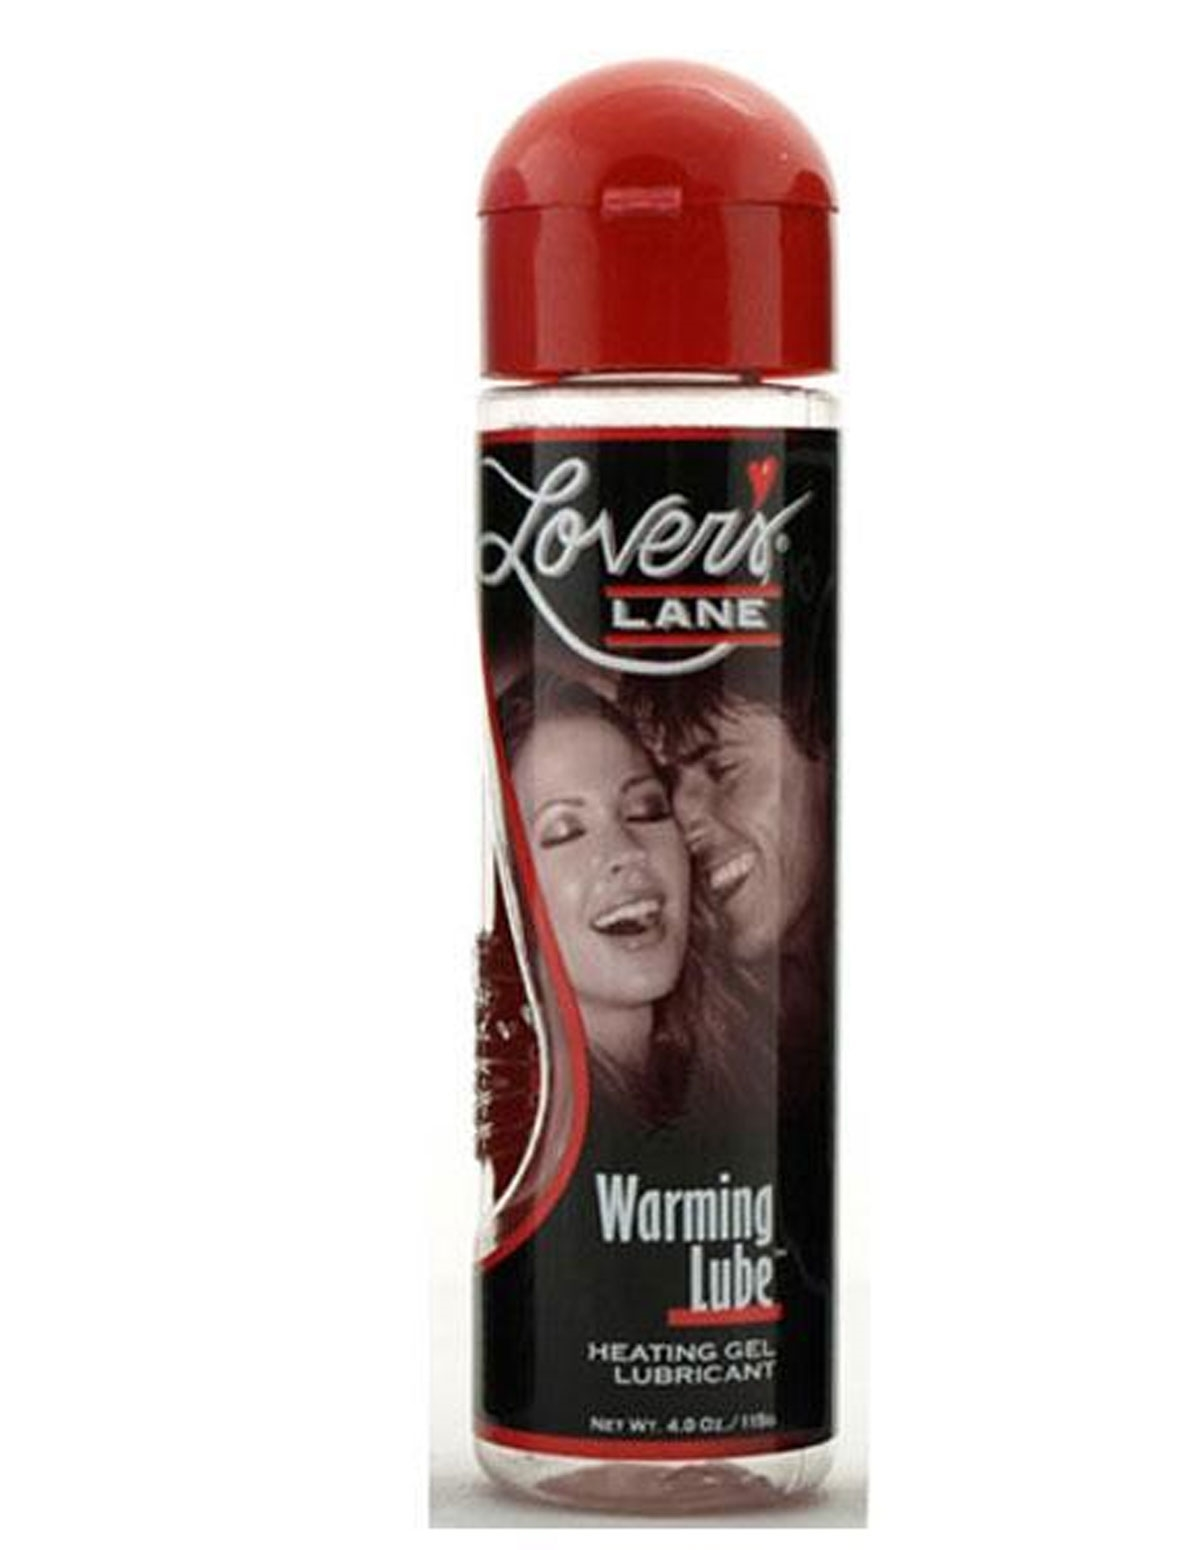 Lovers Lane Warming Lube